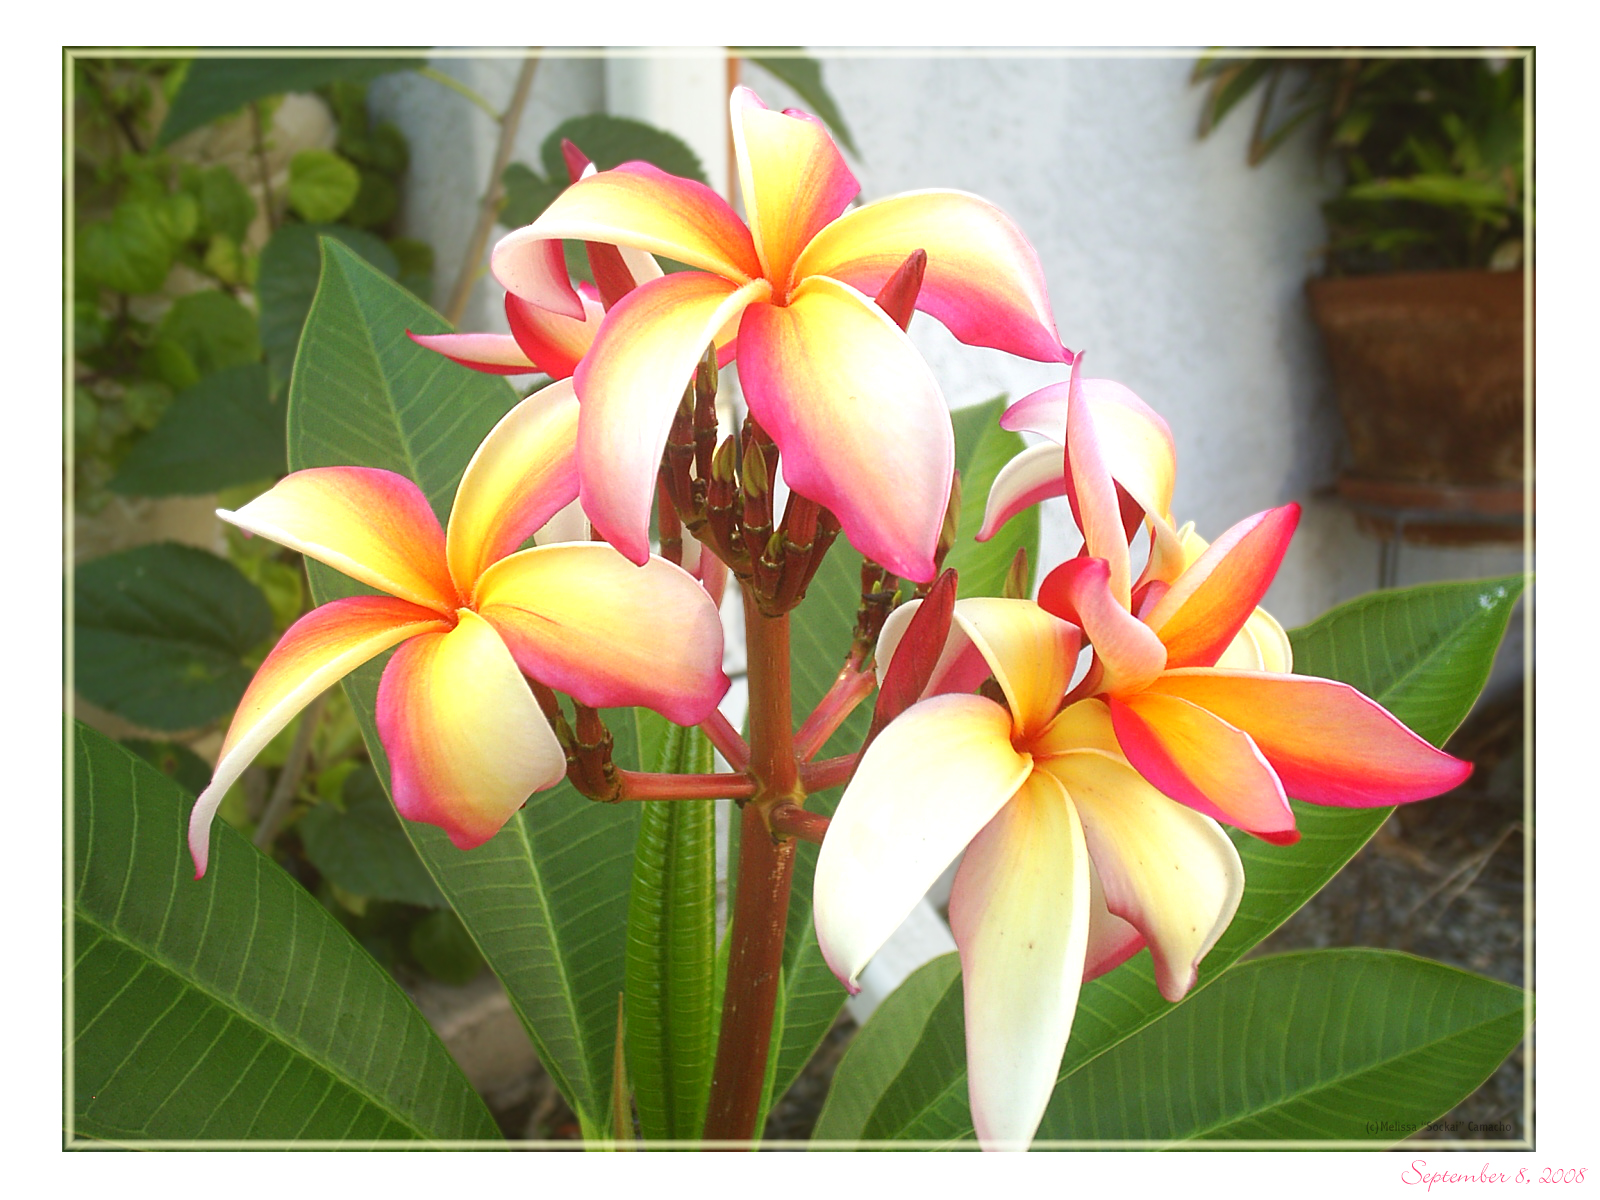 Hawaiian Flowers 2 by sockaichan on DeviantArt